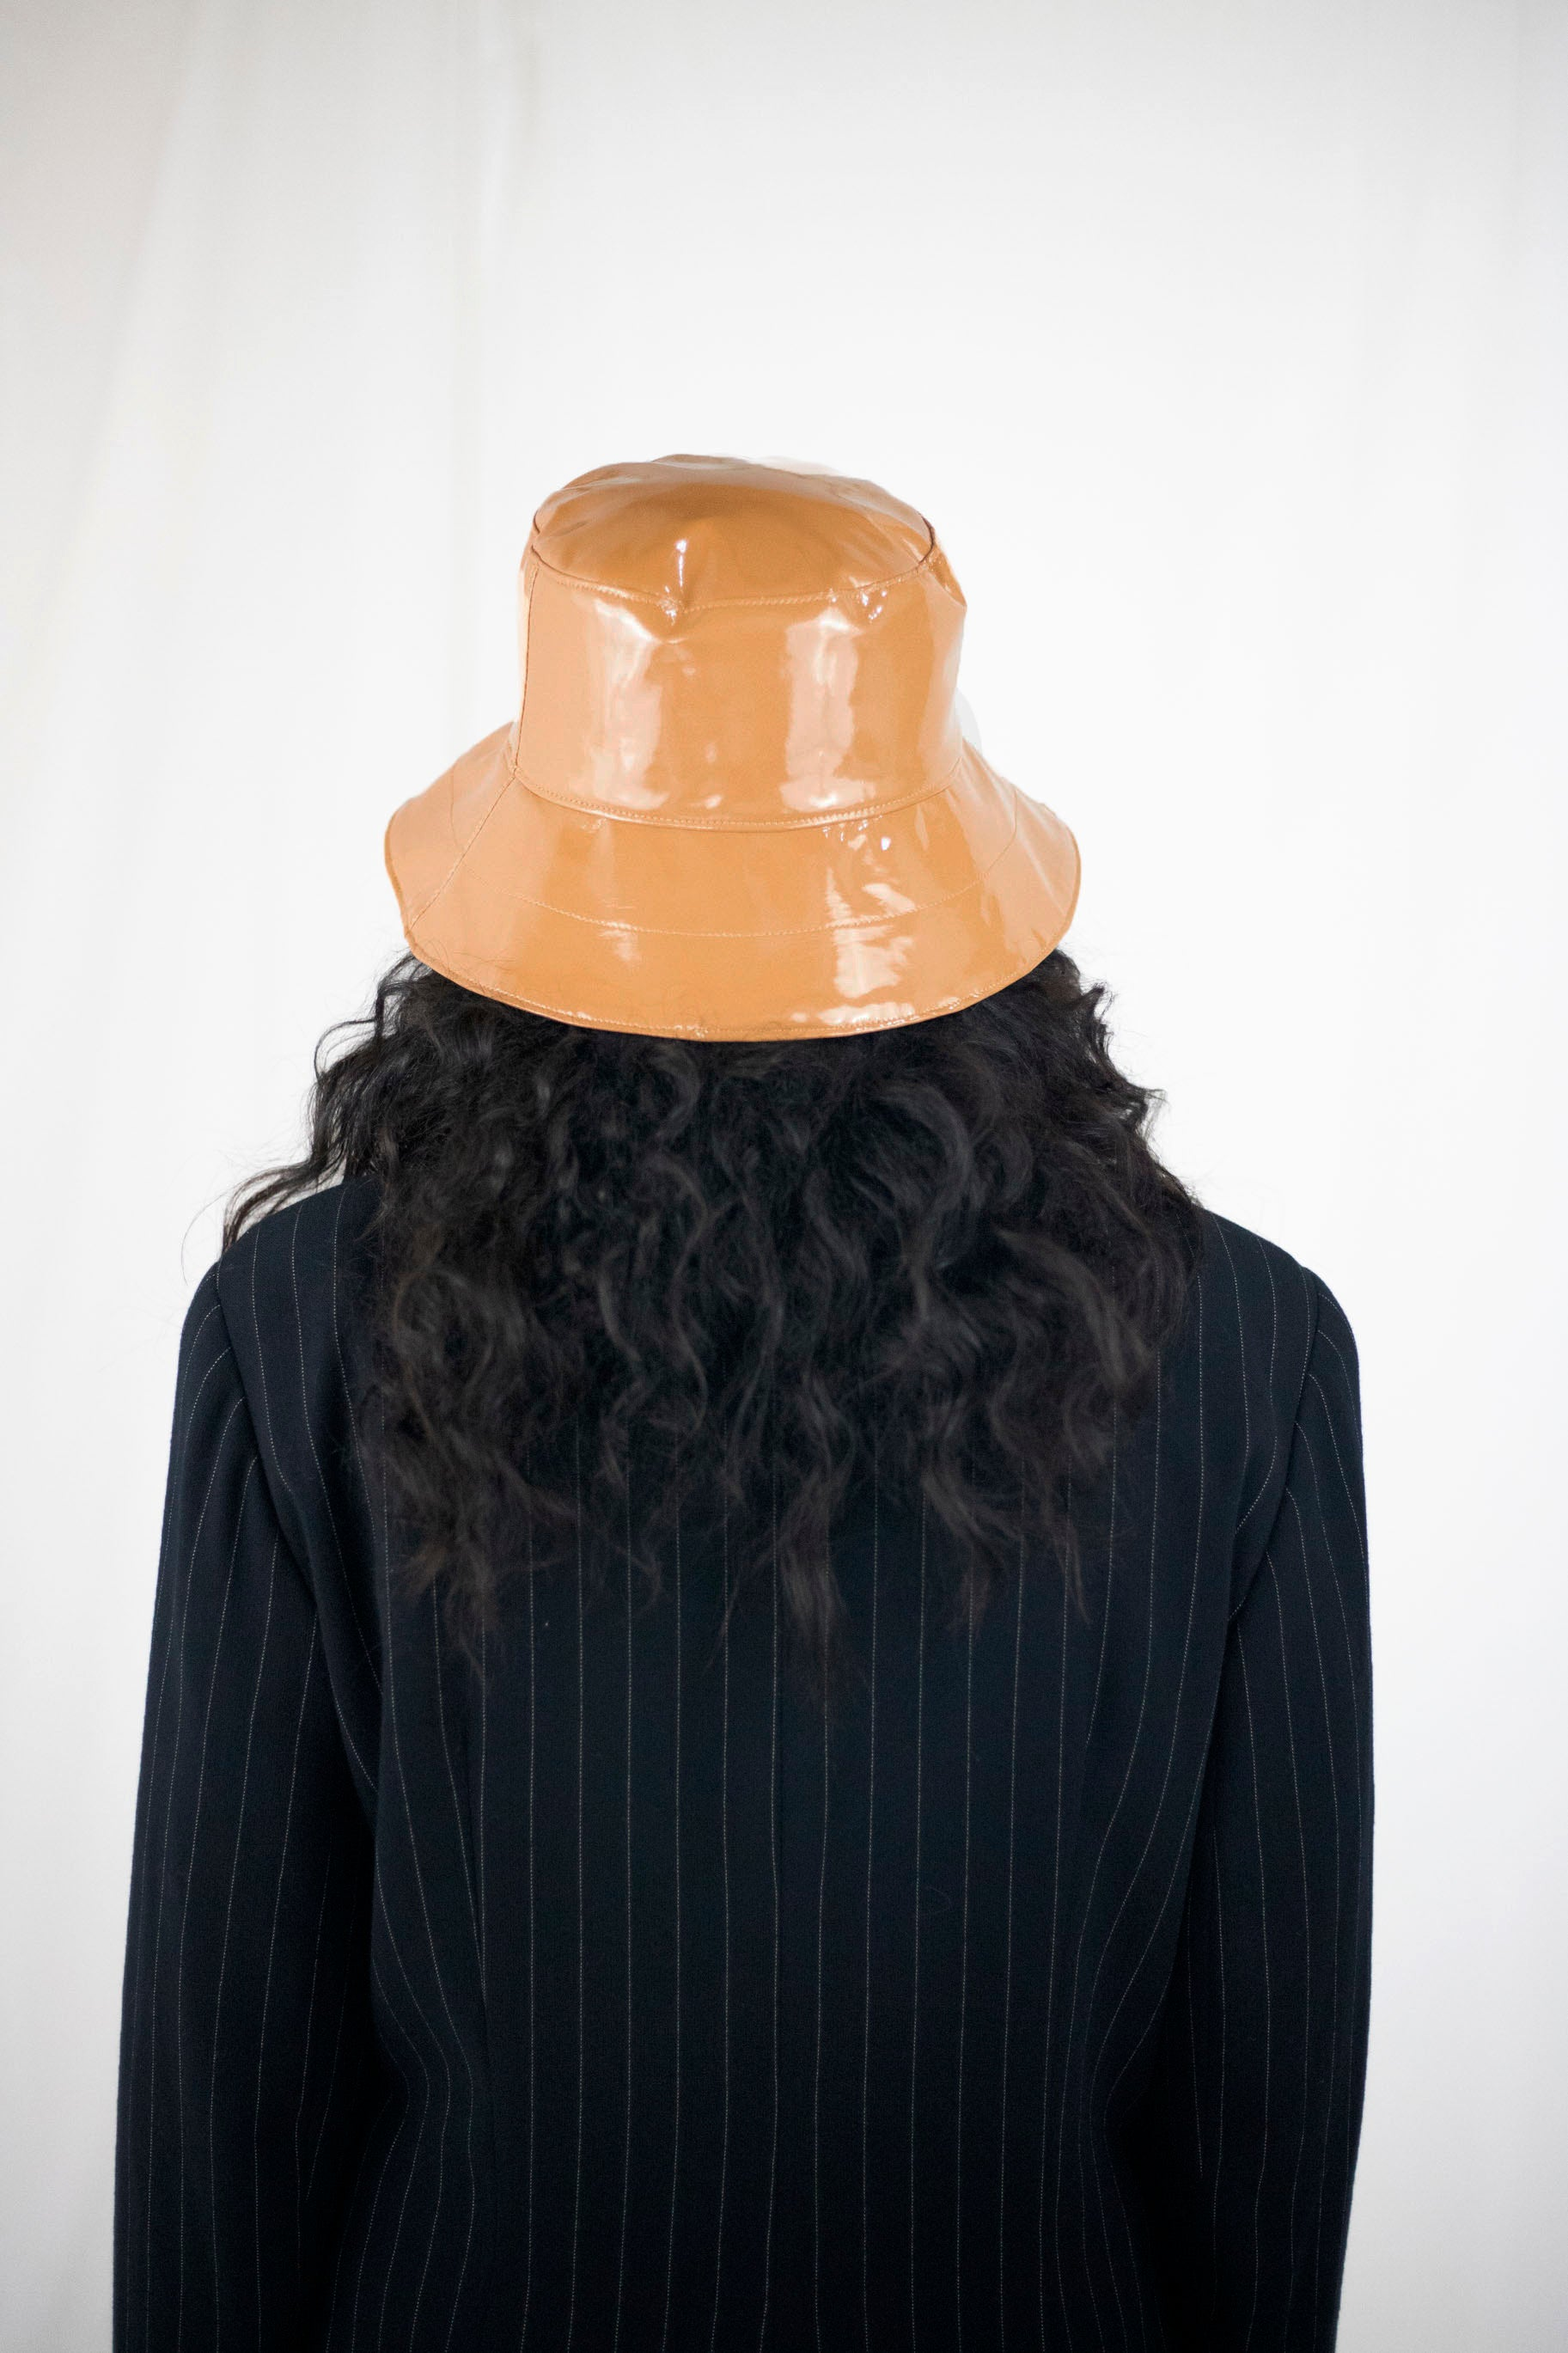 Norah X Camilla Ashley | Rainhat in Caramel